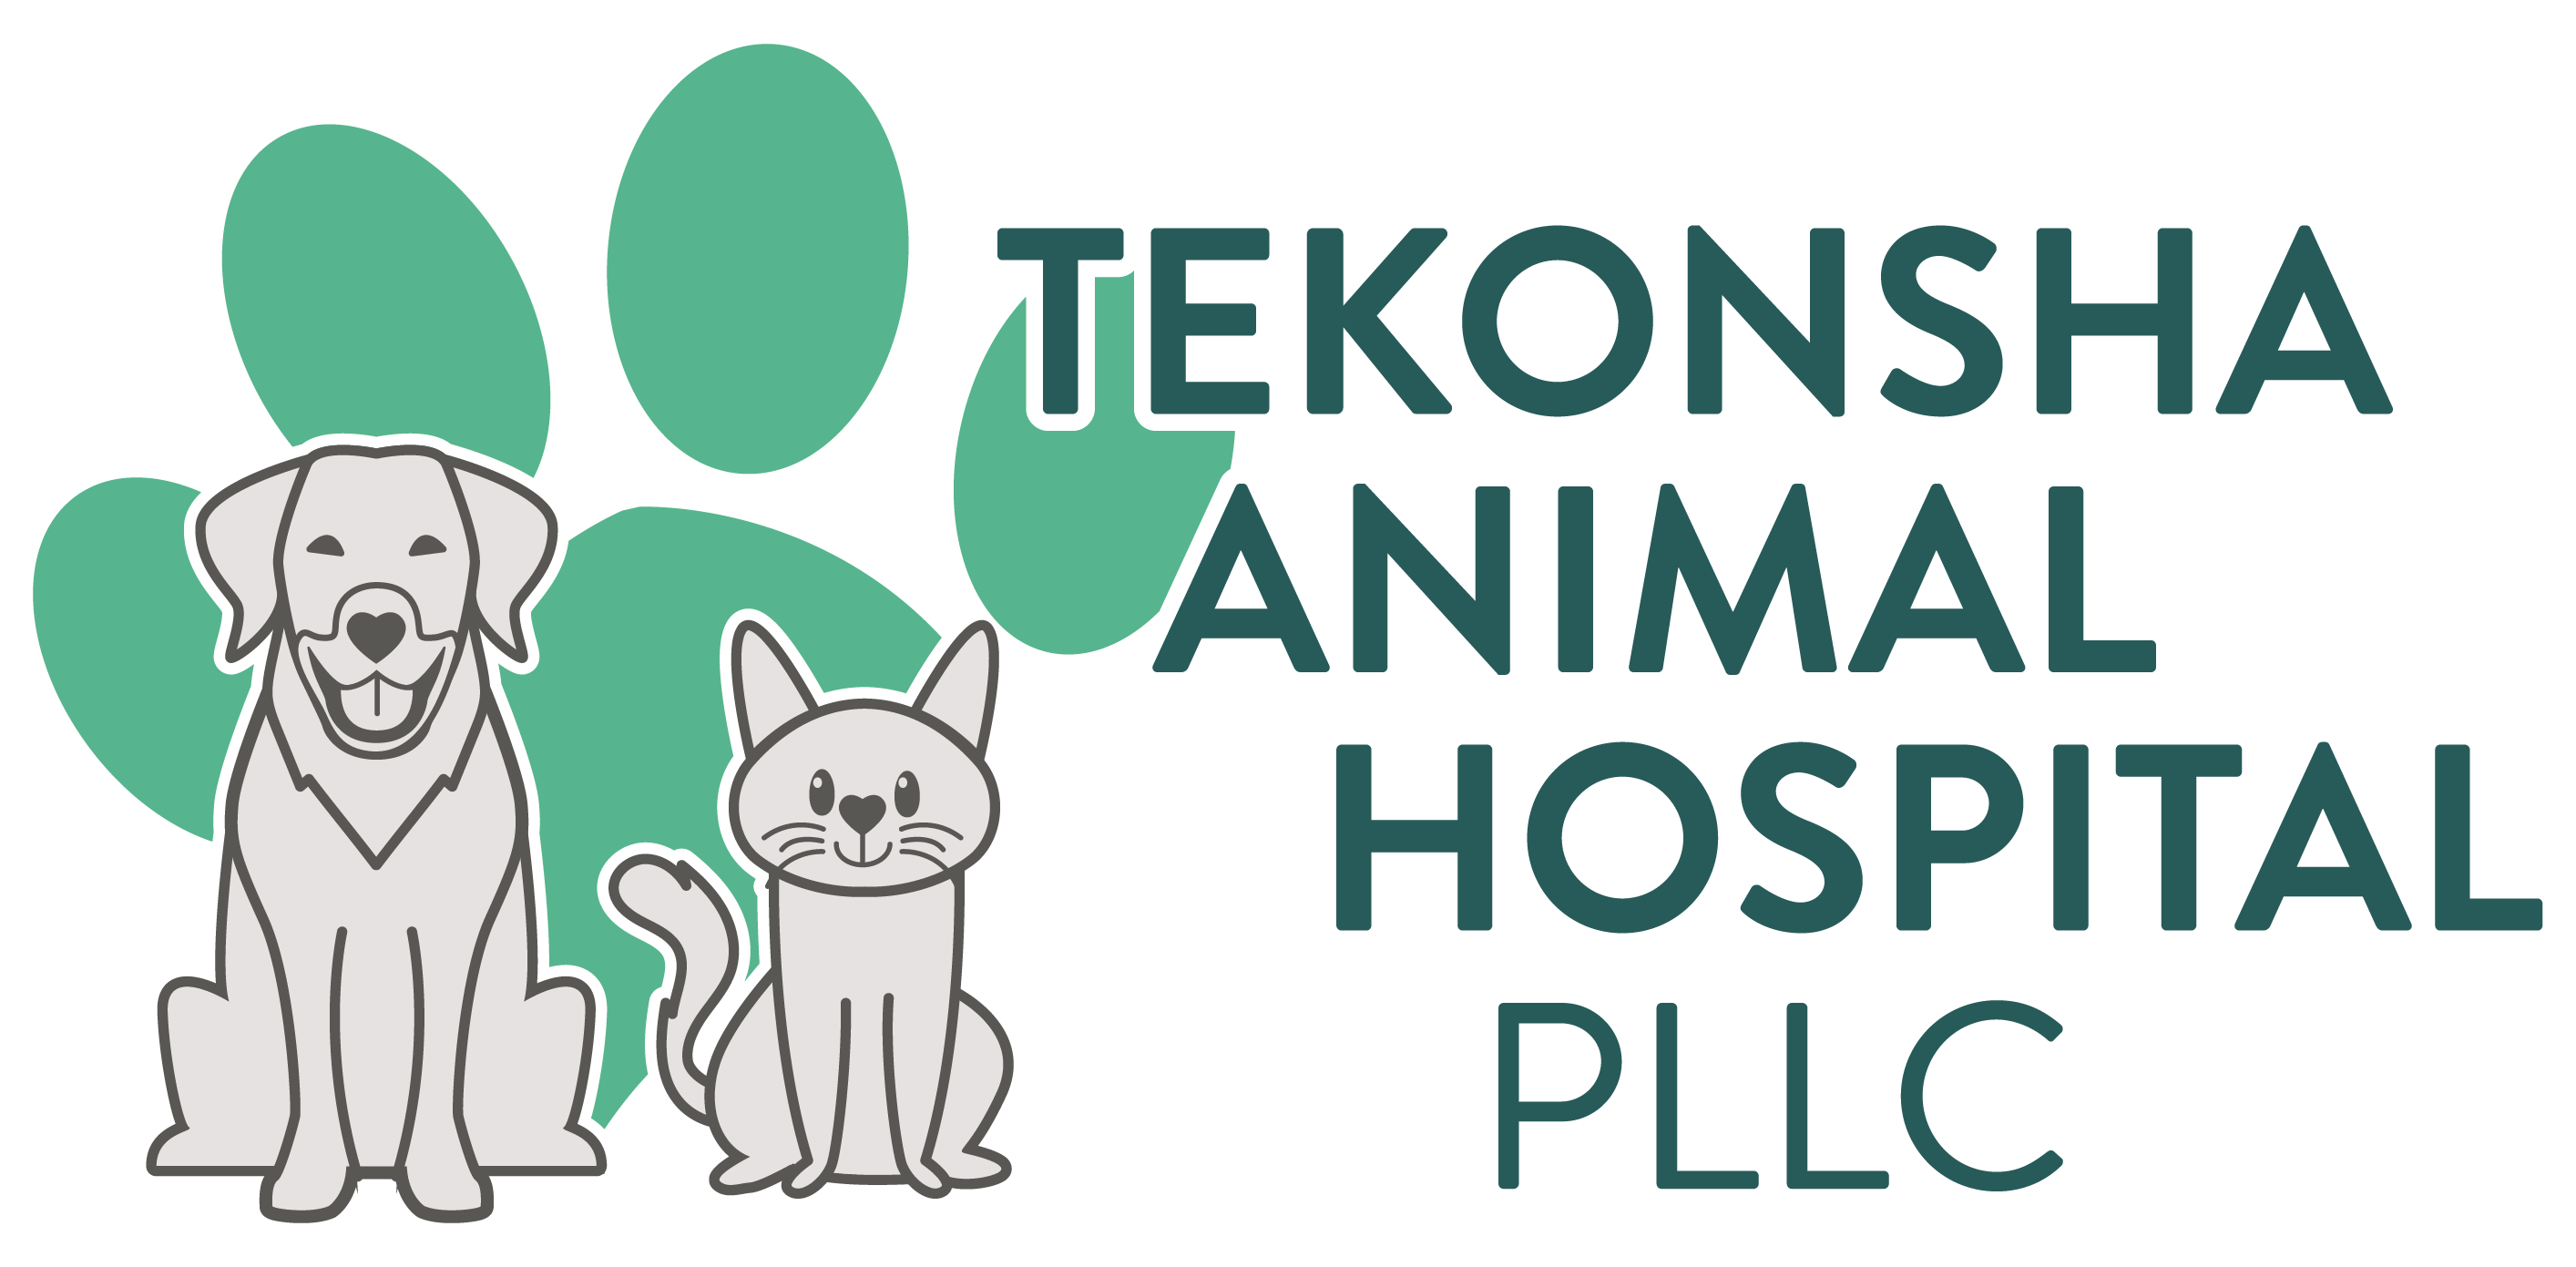 Tekonsha Animal Hospital